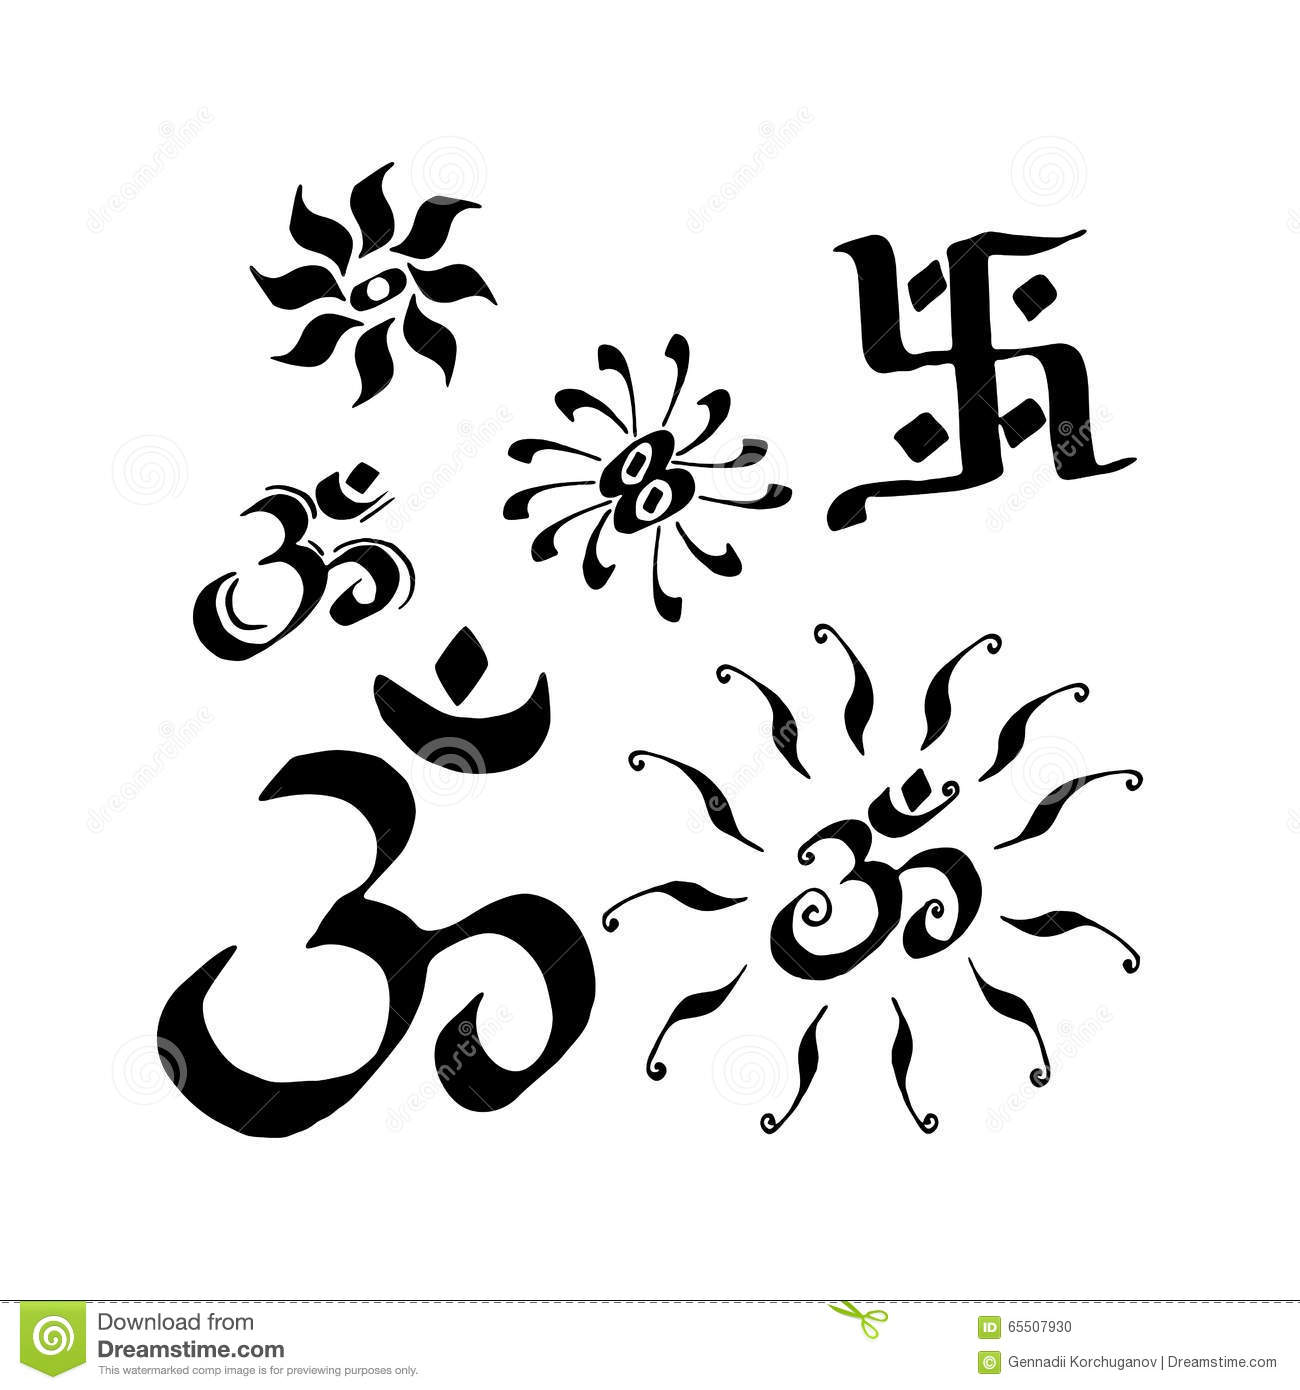 India set of signs and symbols stock vector illustration of india set of signs and symbols biocorpaavc Choice Image